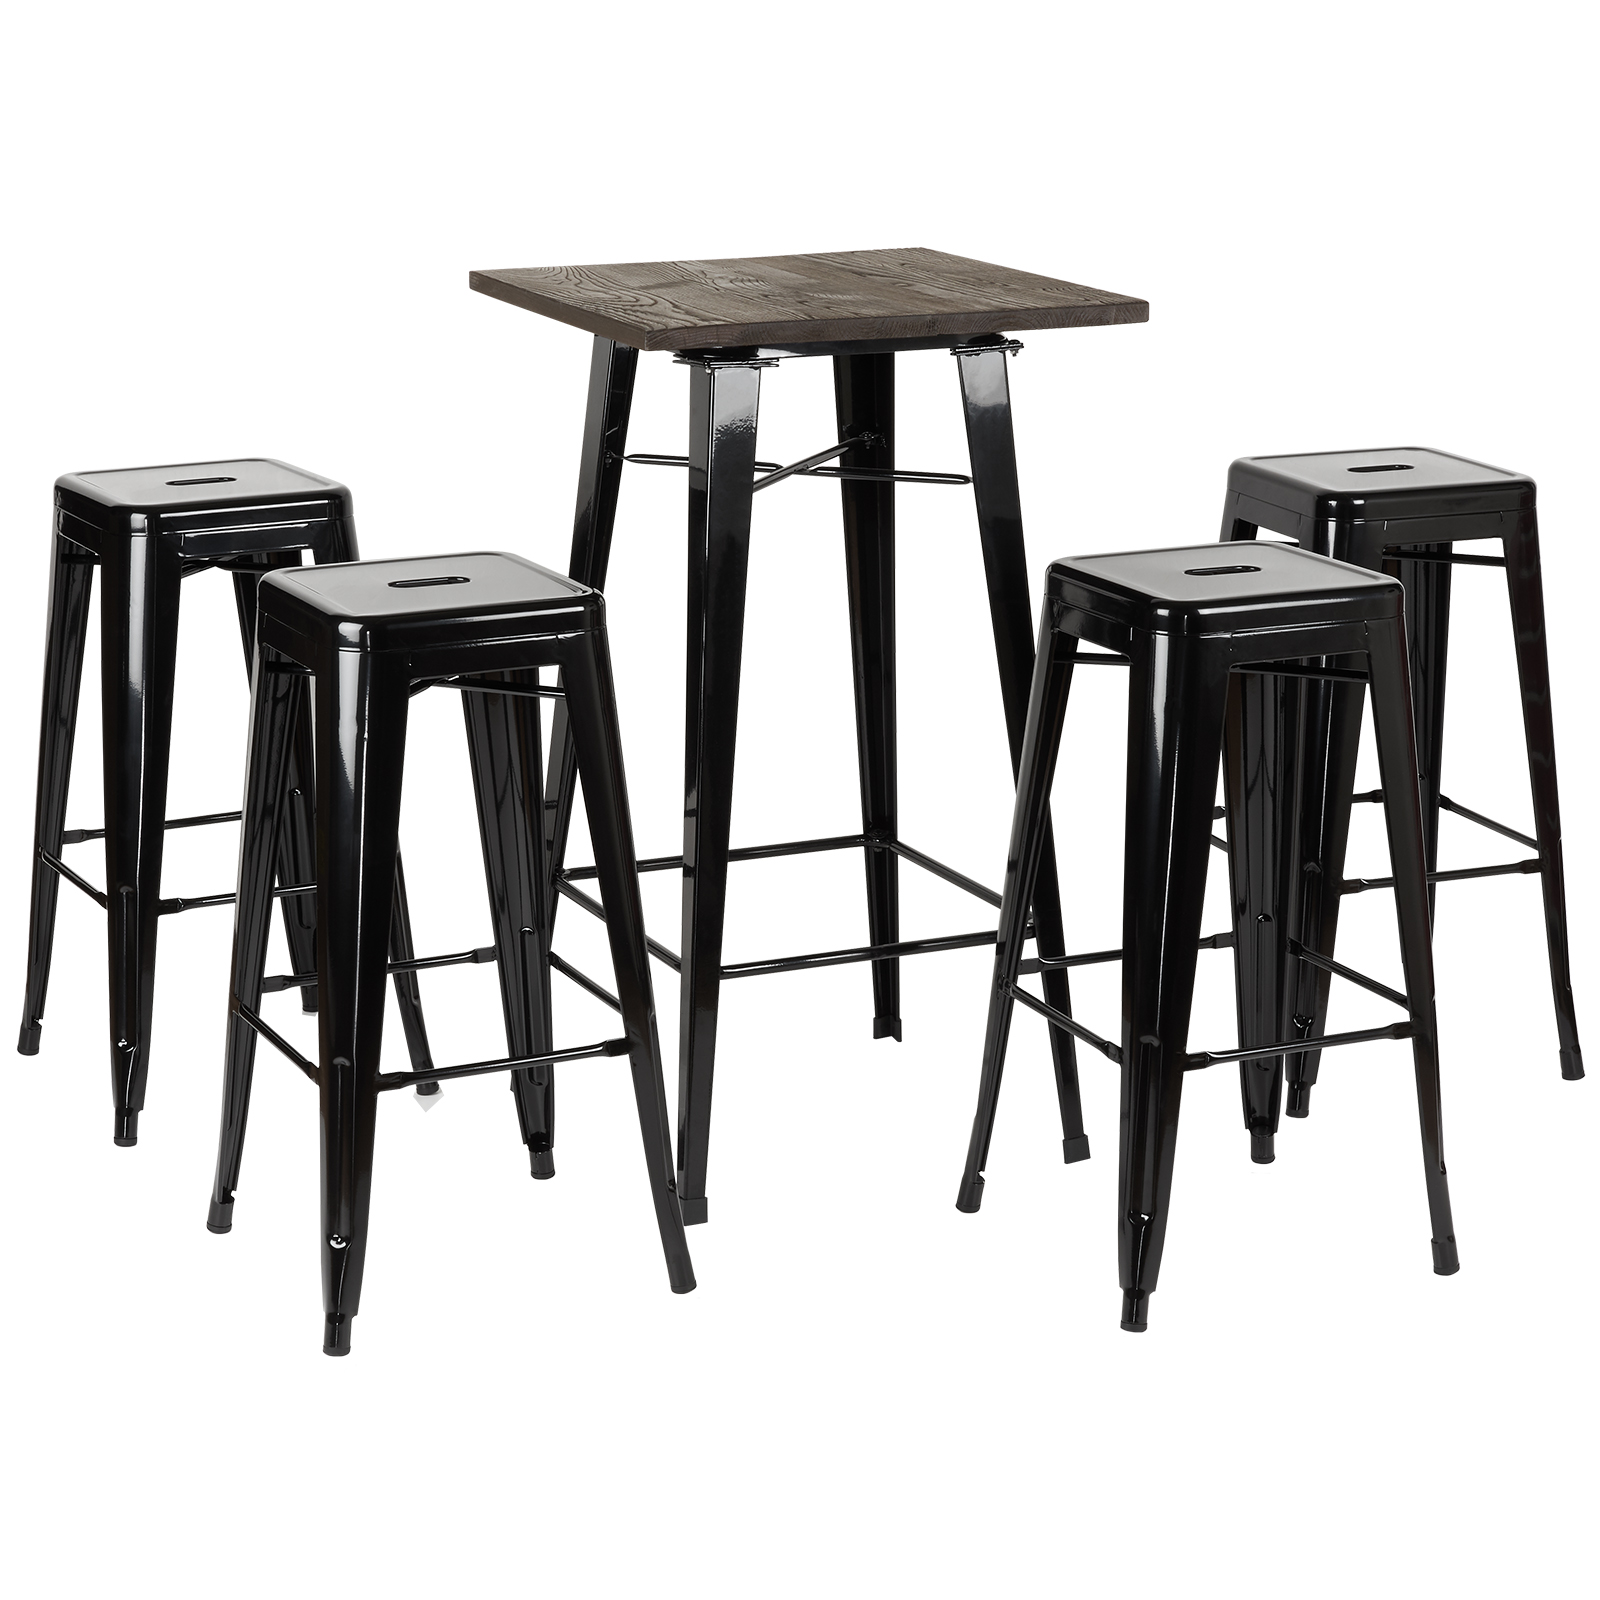 Enjoyable Details About Hartleys 4 Black Bar Stools Dark Wood Bistro Kitchen Dining Table Cafe Chair Set Caraccident5 Cool Chair Designs And Ideas Caraccident5Info